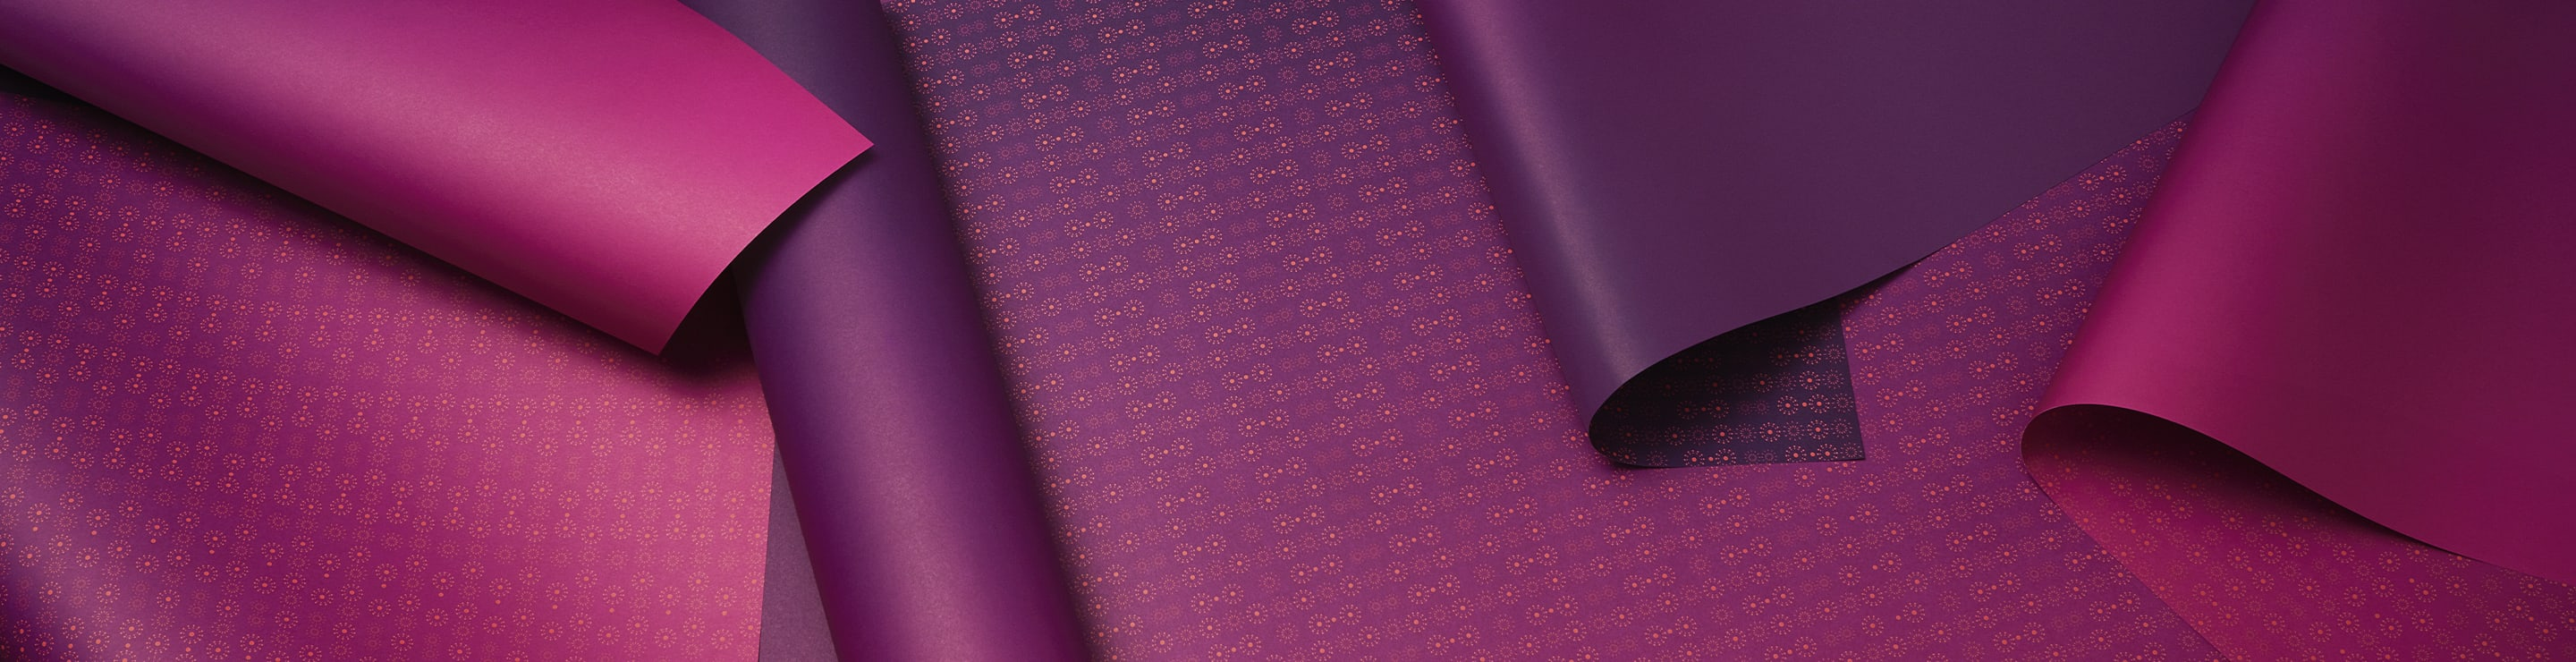 Violet and purple gift background